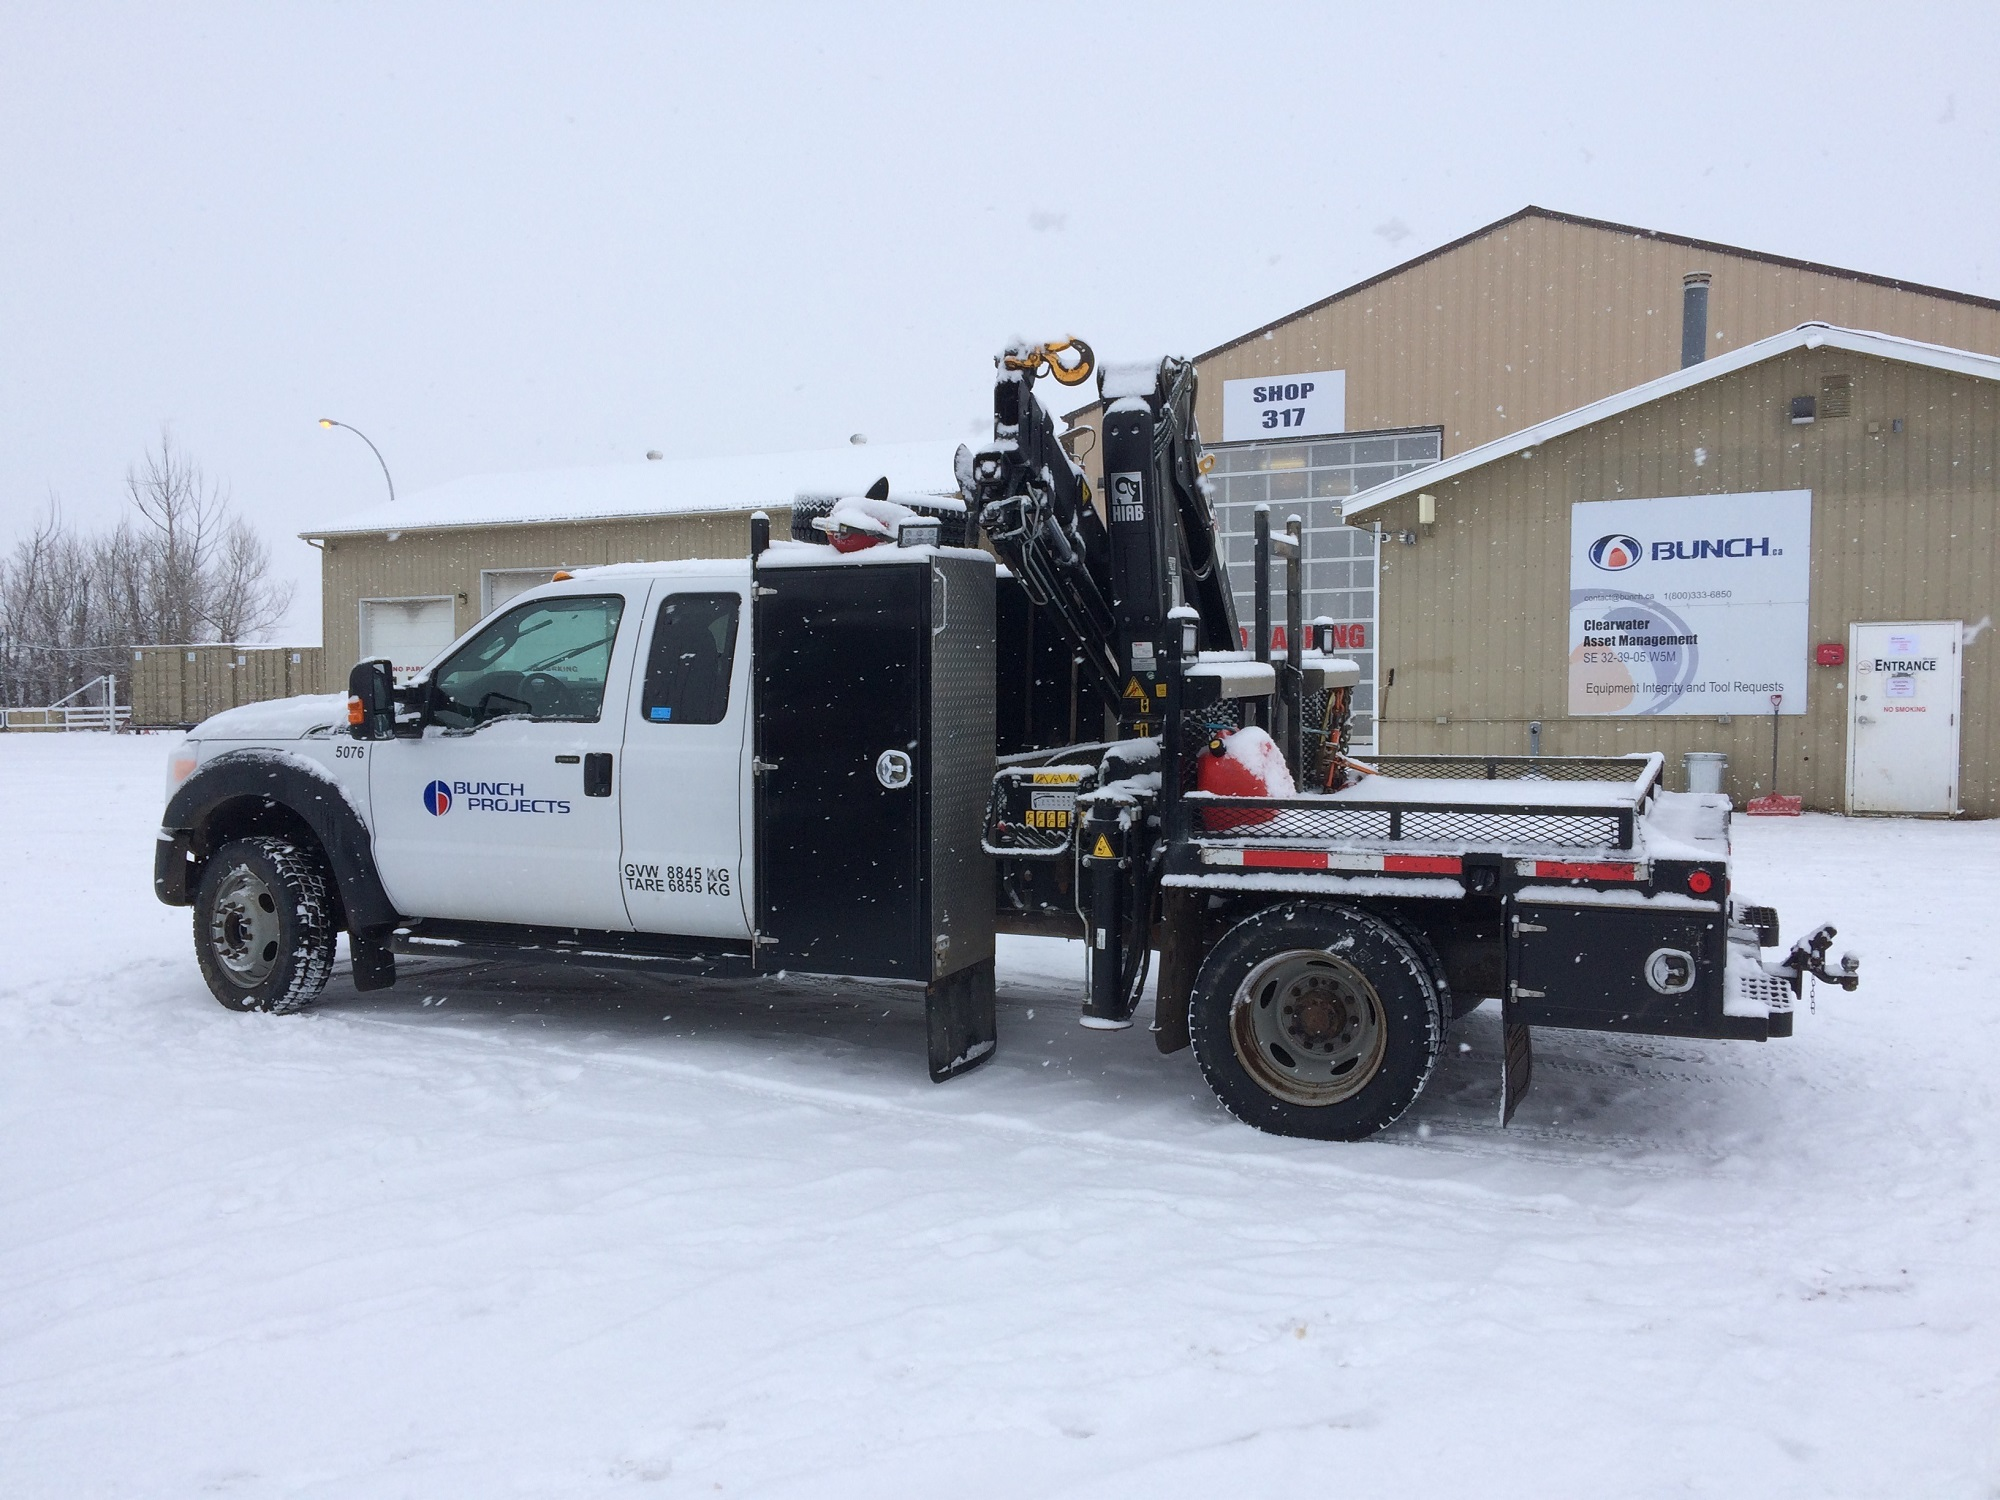 Bunch Picker Truck for Oil and Gas Pipe Spool Fabrication